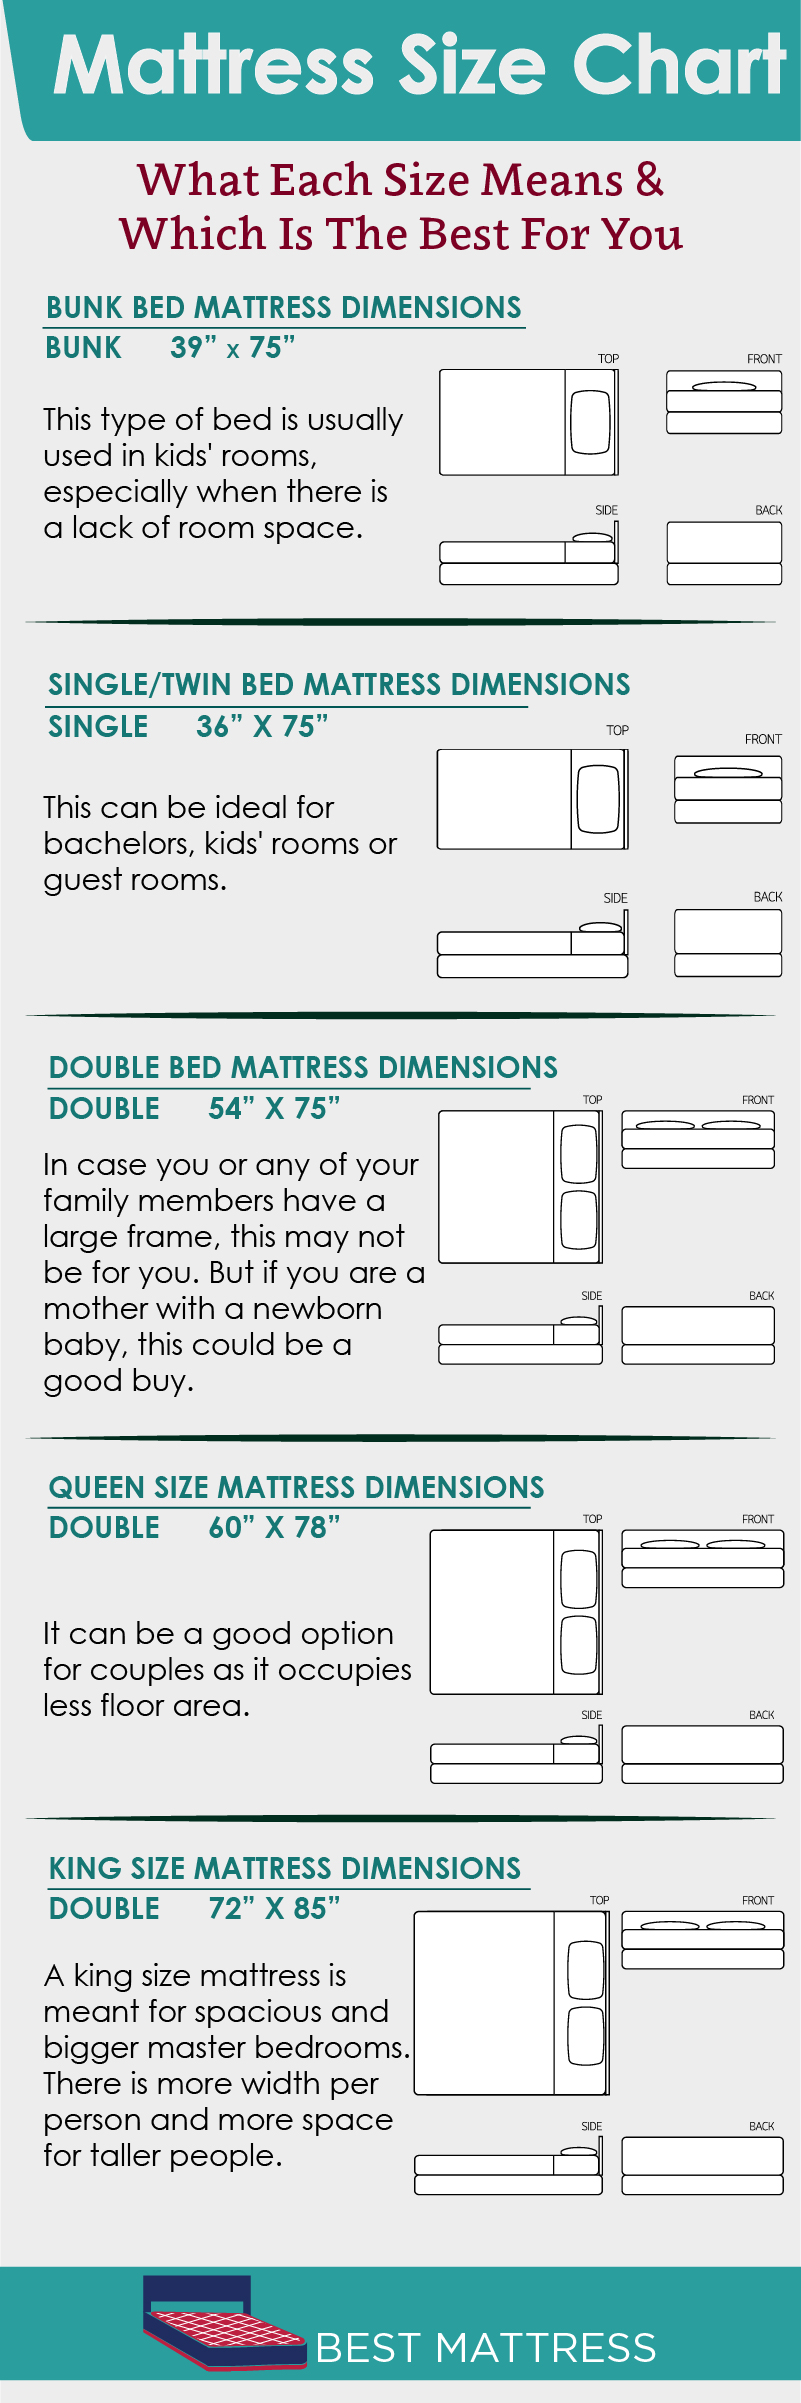 Mattress Size Chart Single Double King Or Queen What Do They